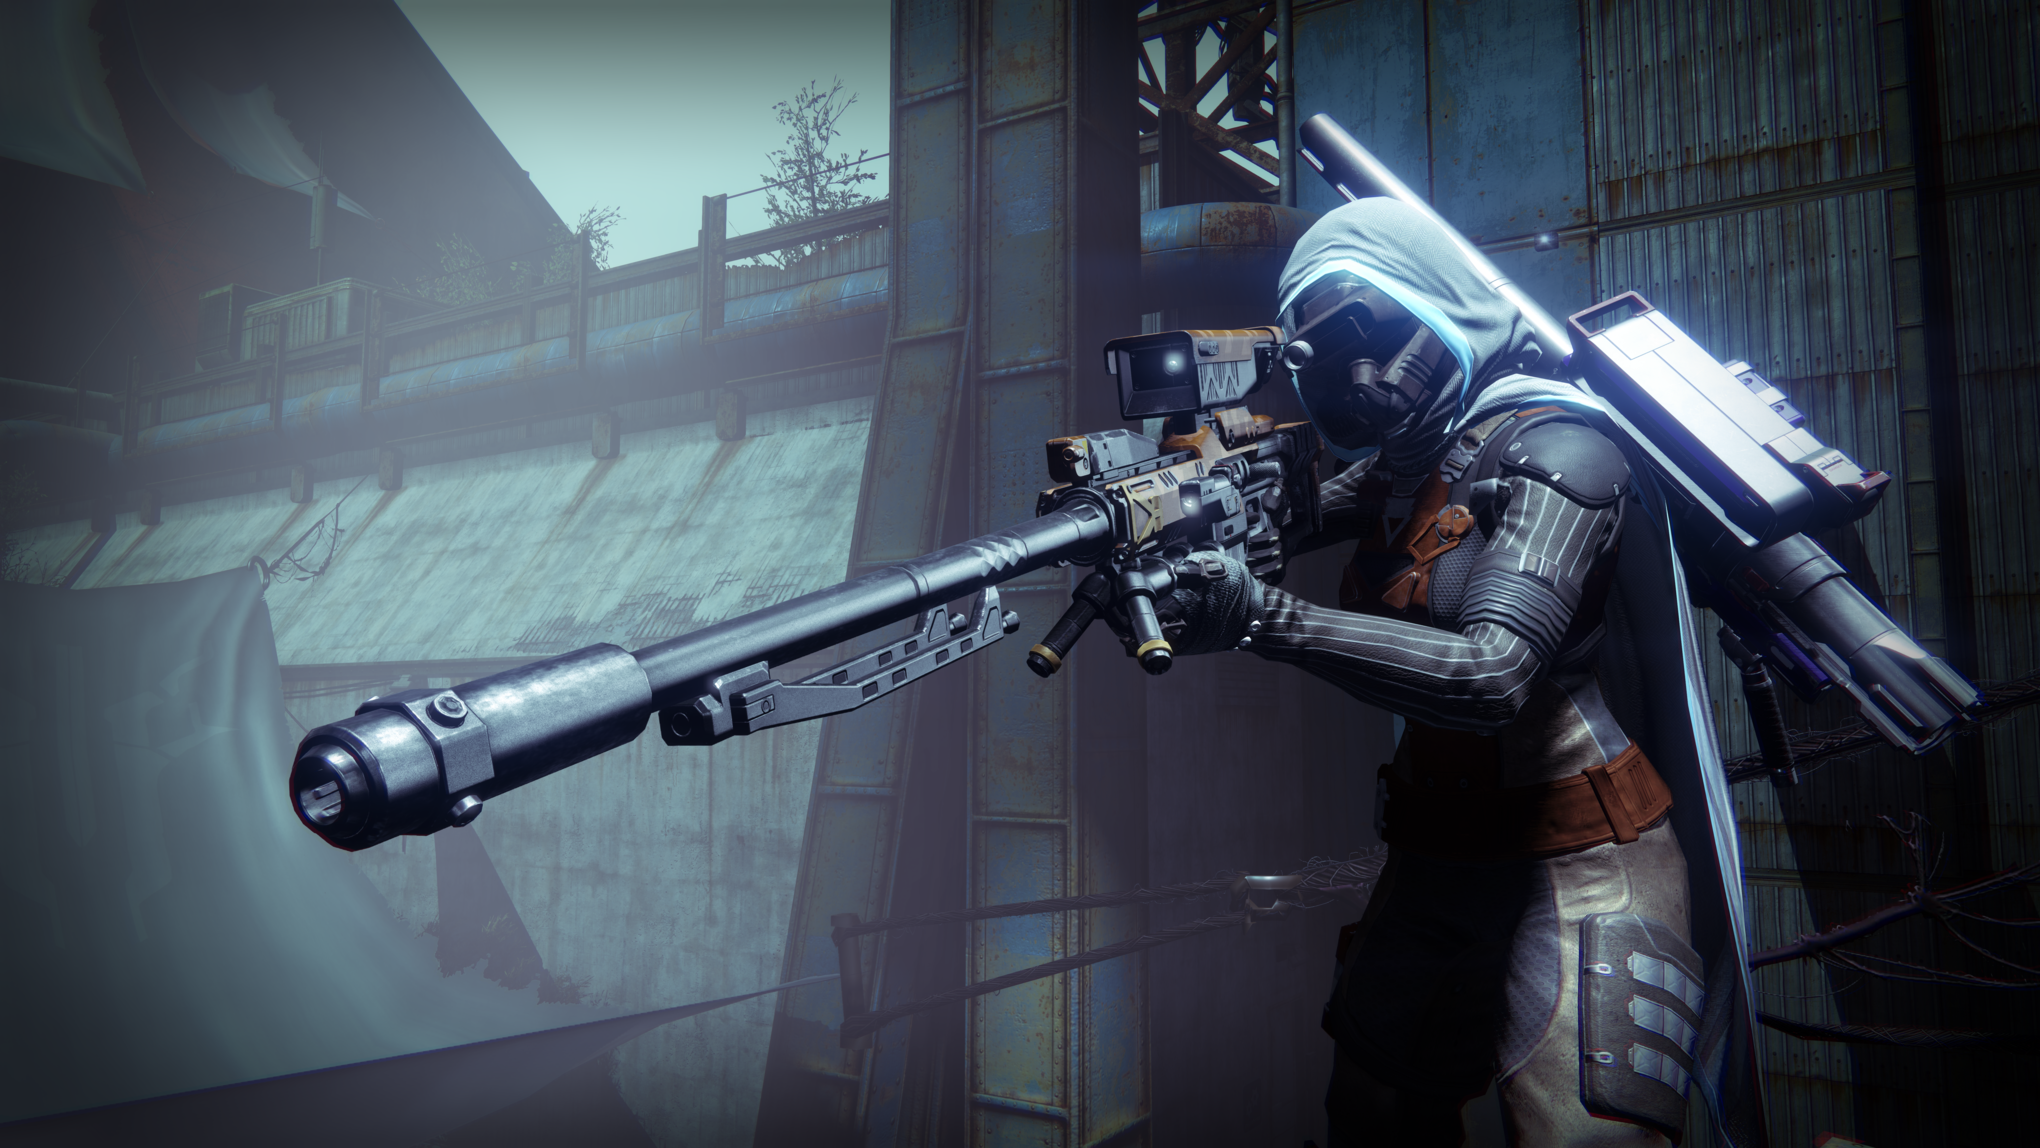 Armed Player in Video Game Destiny